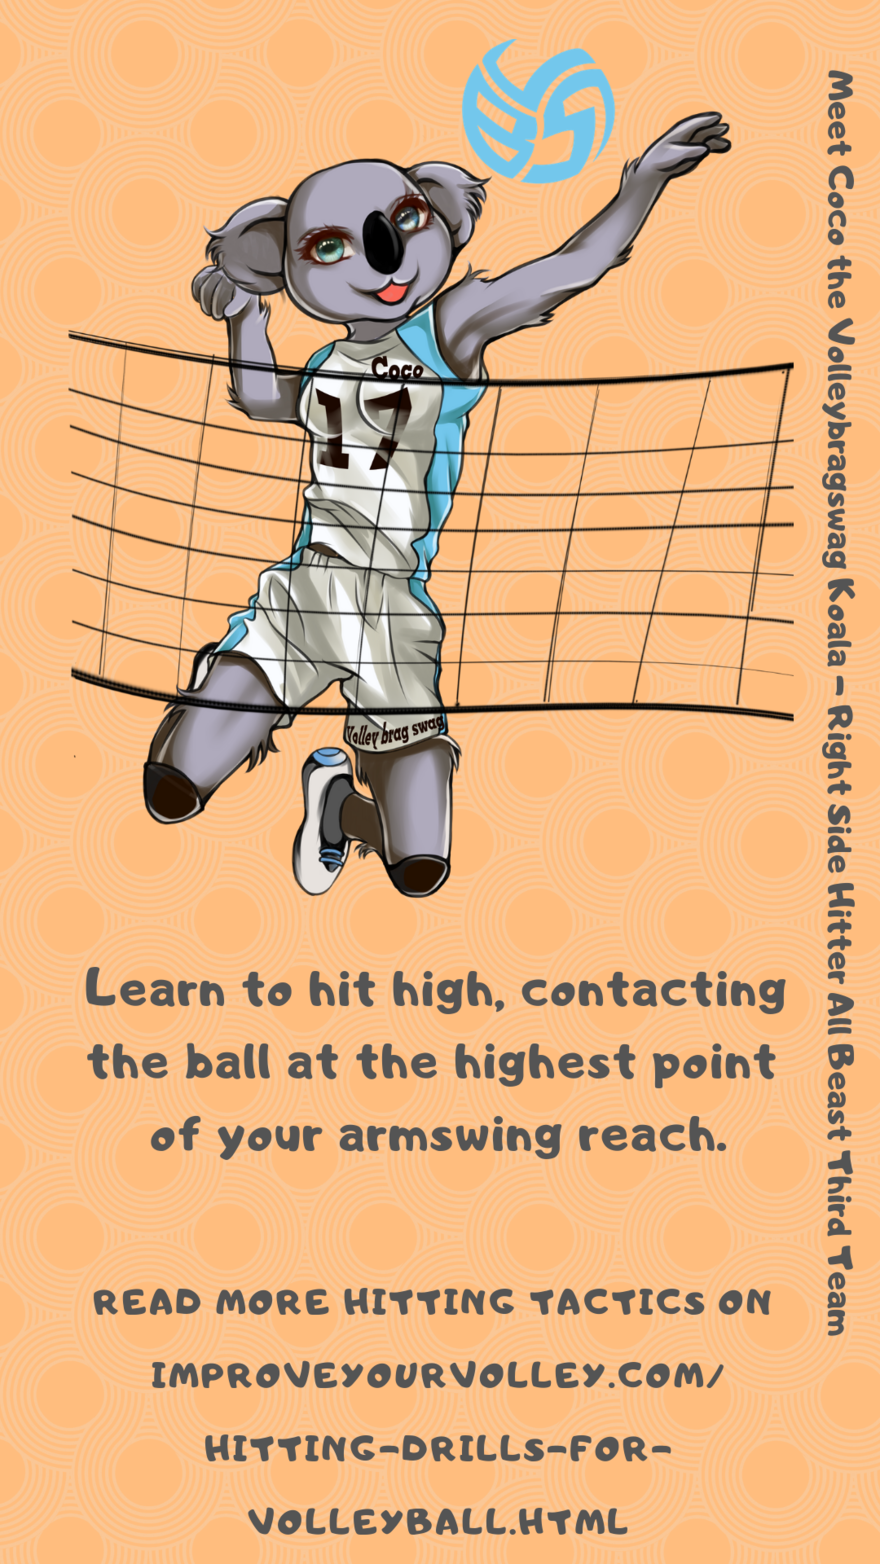 Hitting Tactics: Learn to hit high, contacting the ball at its highest height